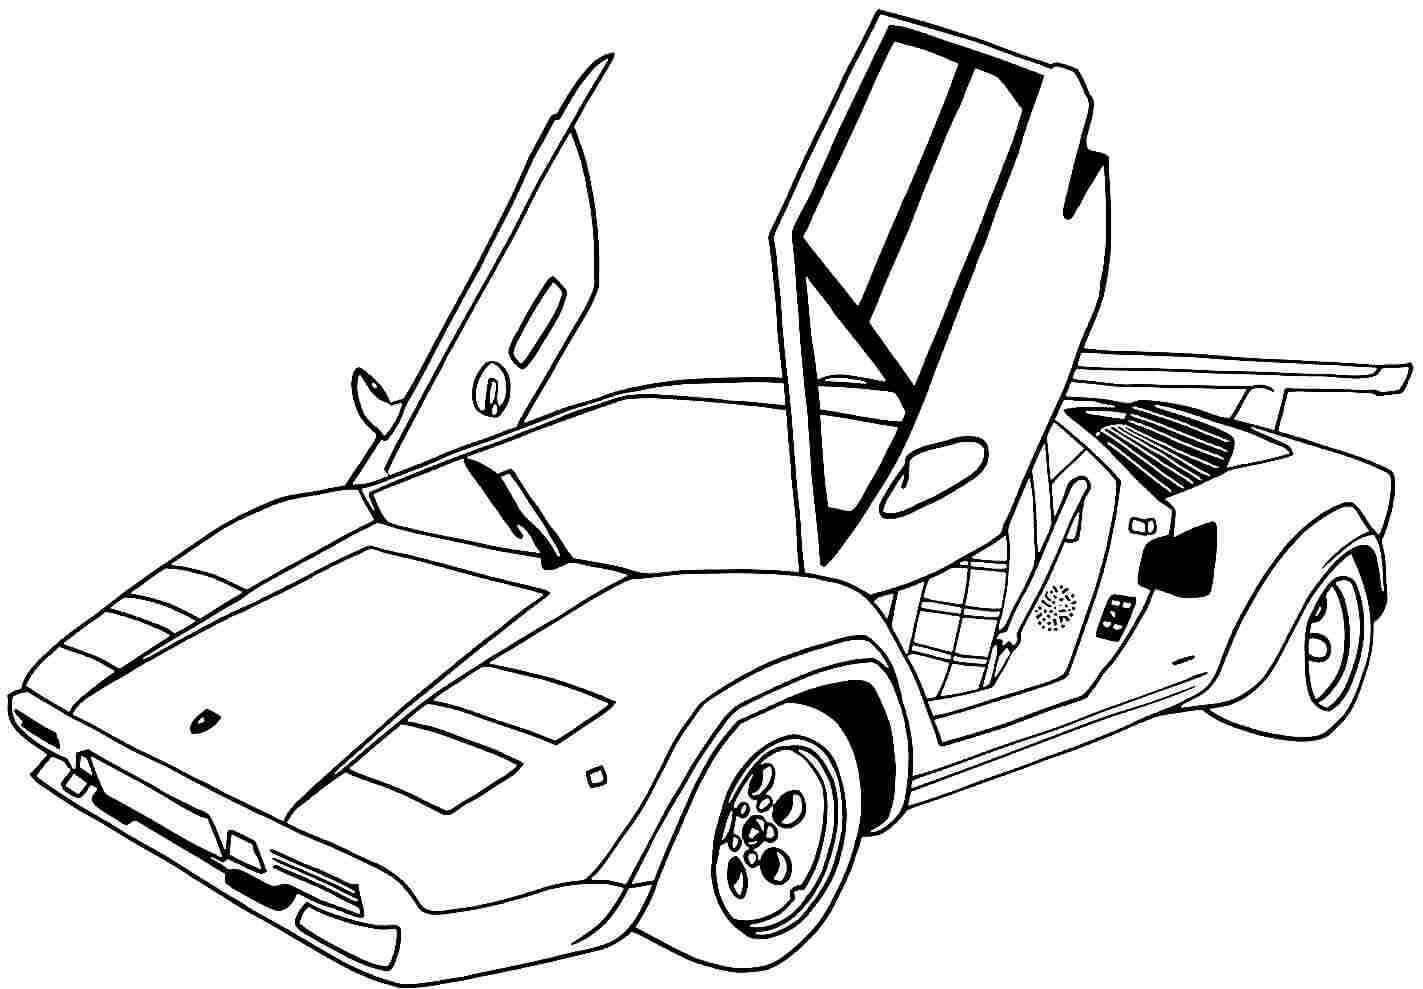 Colouring cars